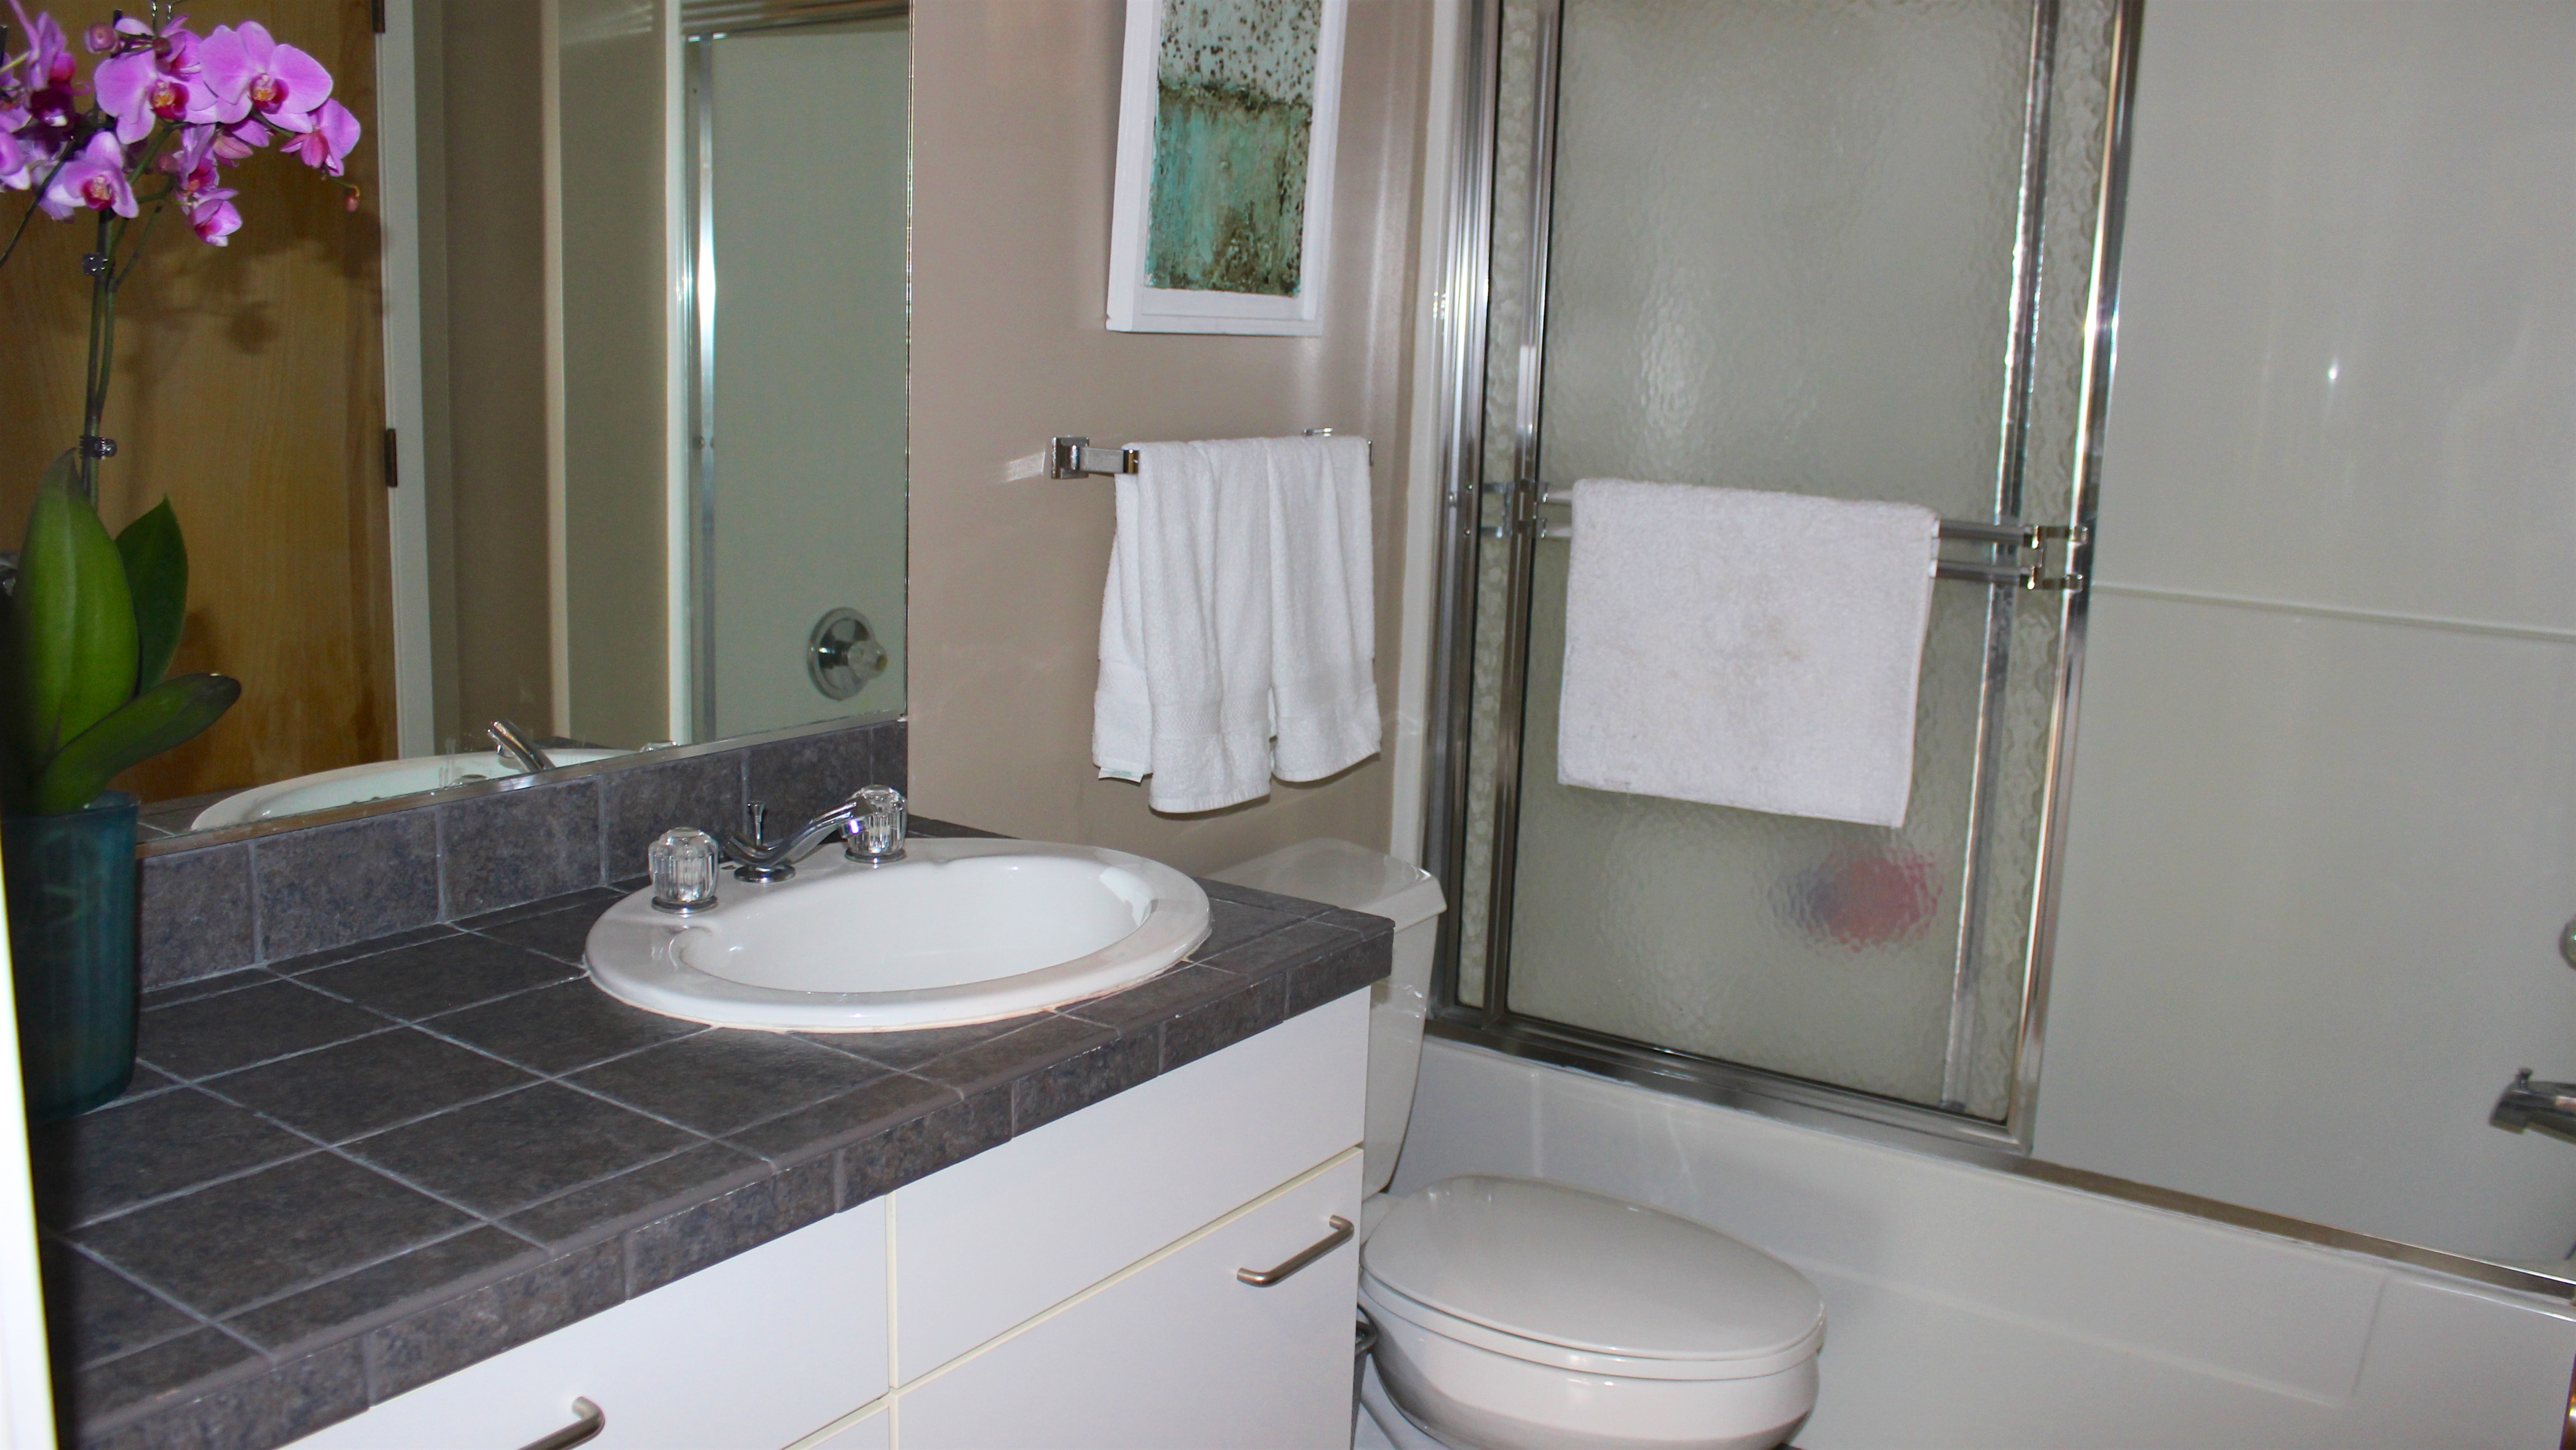 The bath is accessible from the bedroom & hall & features tile counters.